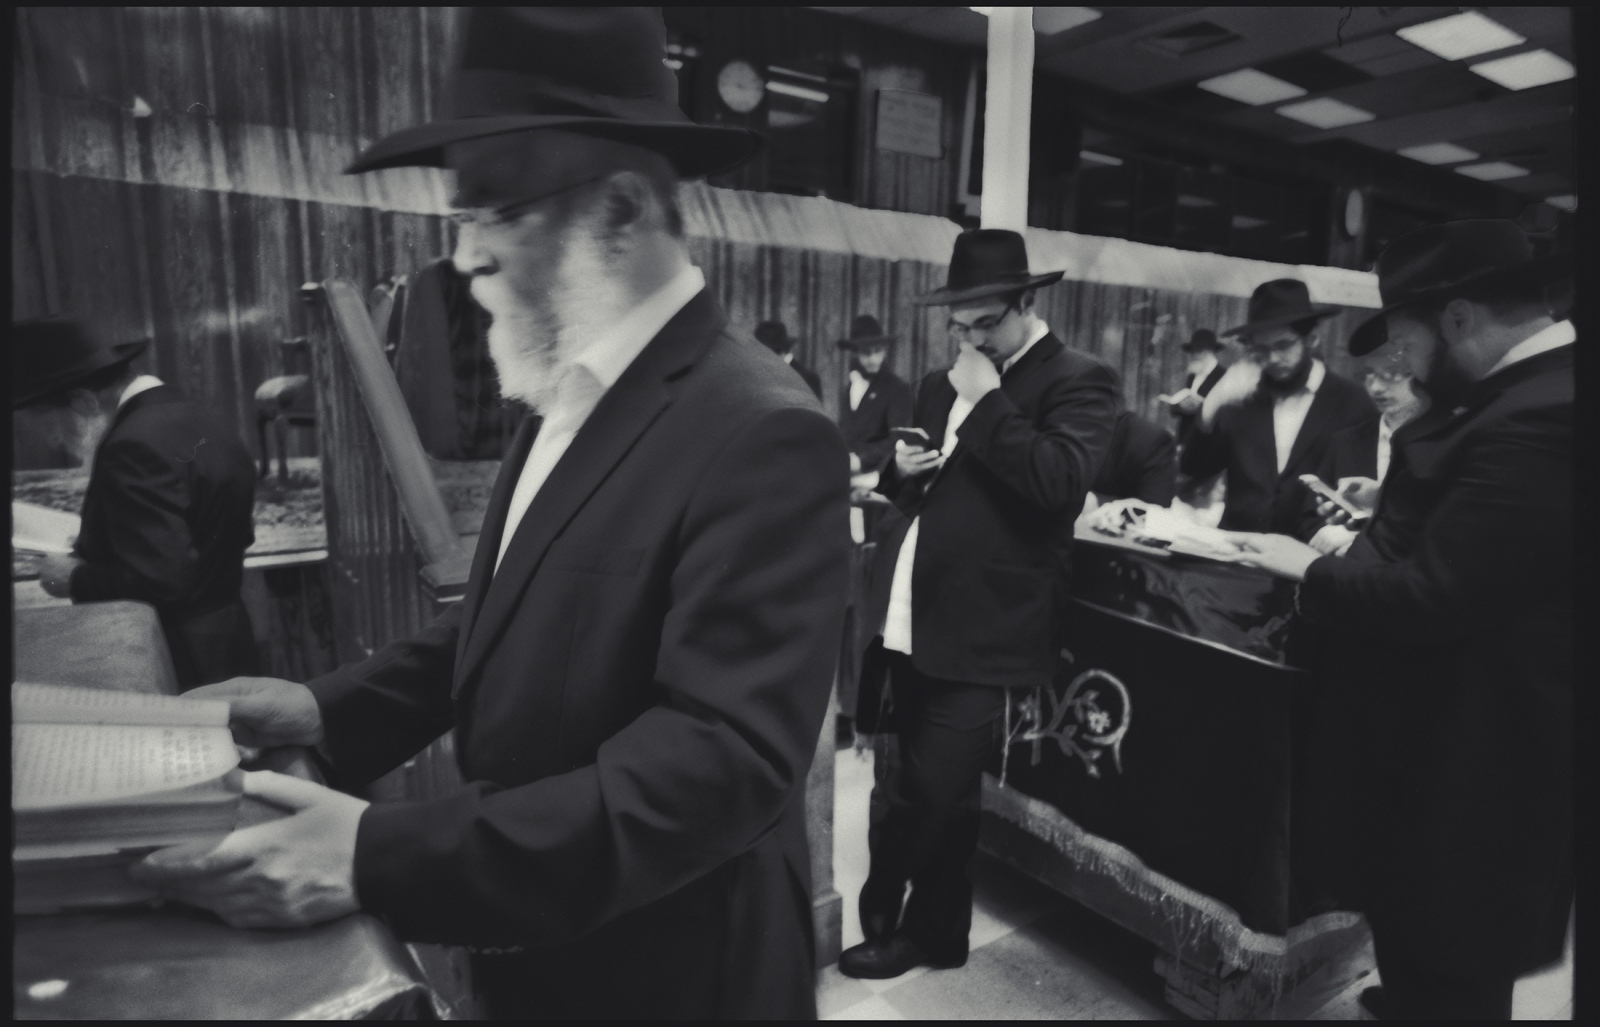 As Rabbi turns the Torah, two men work their mobile phones during Friday prayers. Chabad  Lubavitch, Prospect Heights, Brooklyn, NY. 2017.